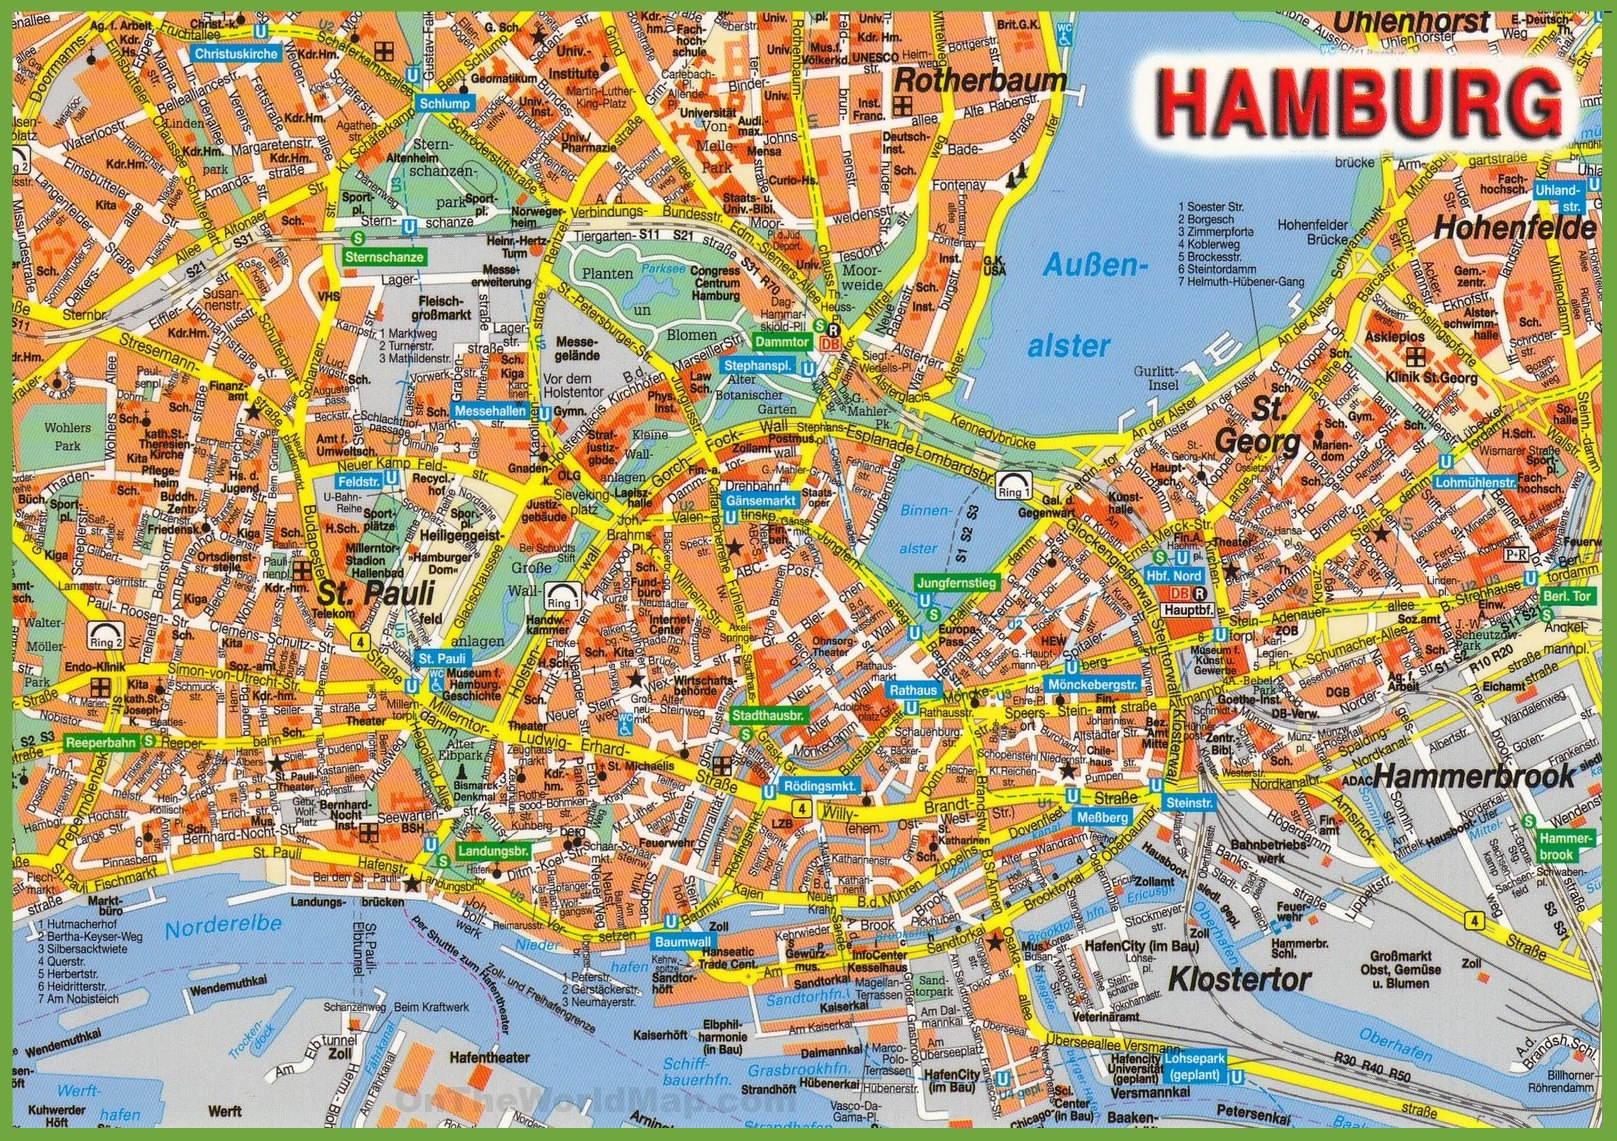 Hamburg tourist attractions map – Jamaica Tourist Attractions Map